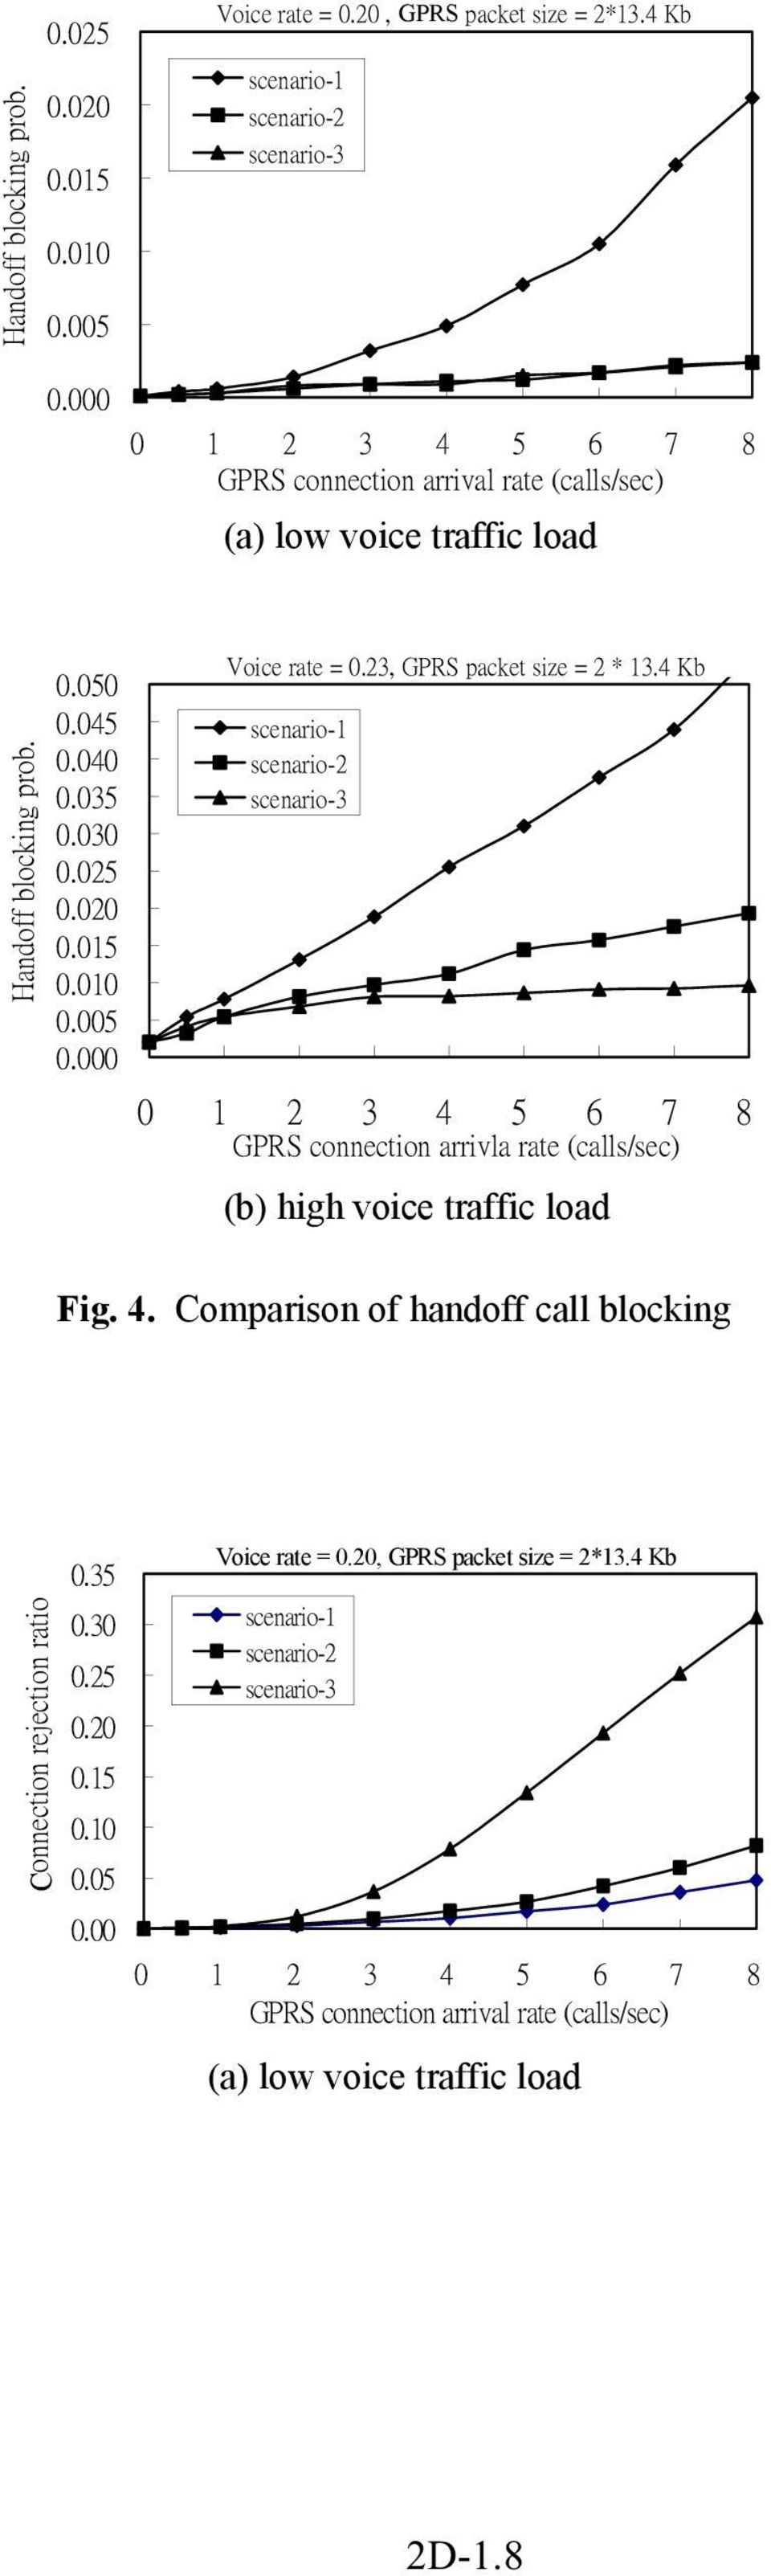 000 Voice rate = 0.23, GPRS packet size = 2 * 13.4 Kb GPRS connection arrivla rate (calls/sec) (b) high voice traffic load Fig. 4.